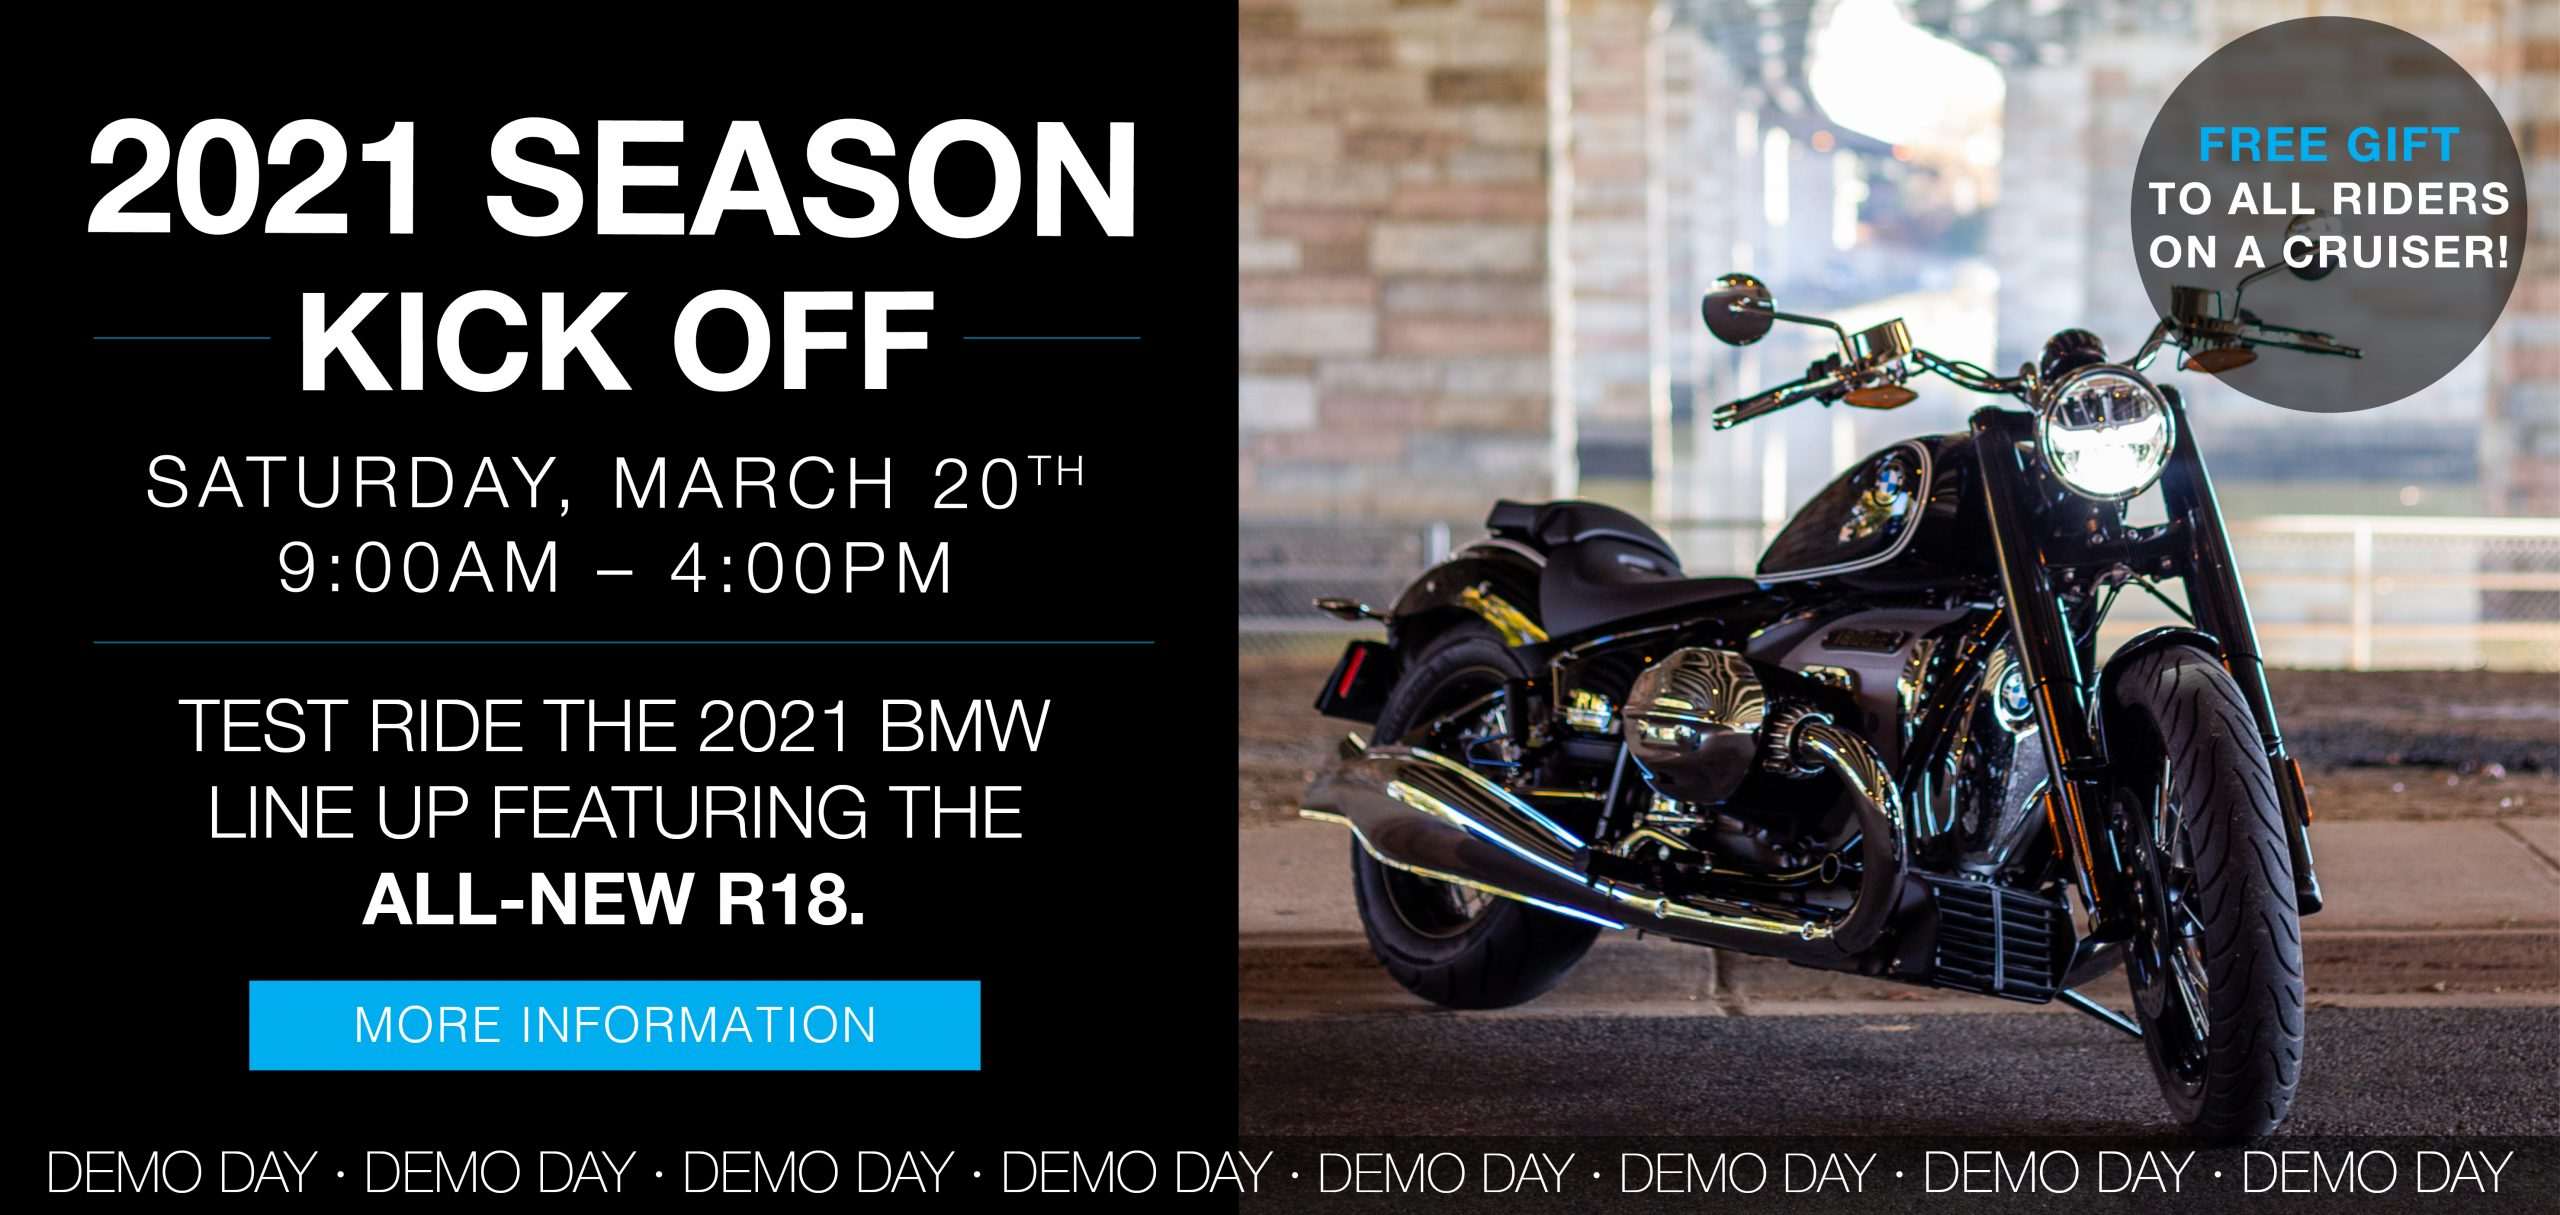 2021 Season Kick Off Demo Day @ Bob's BMW Motorcycles